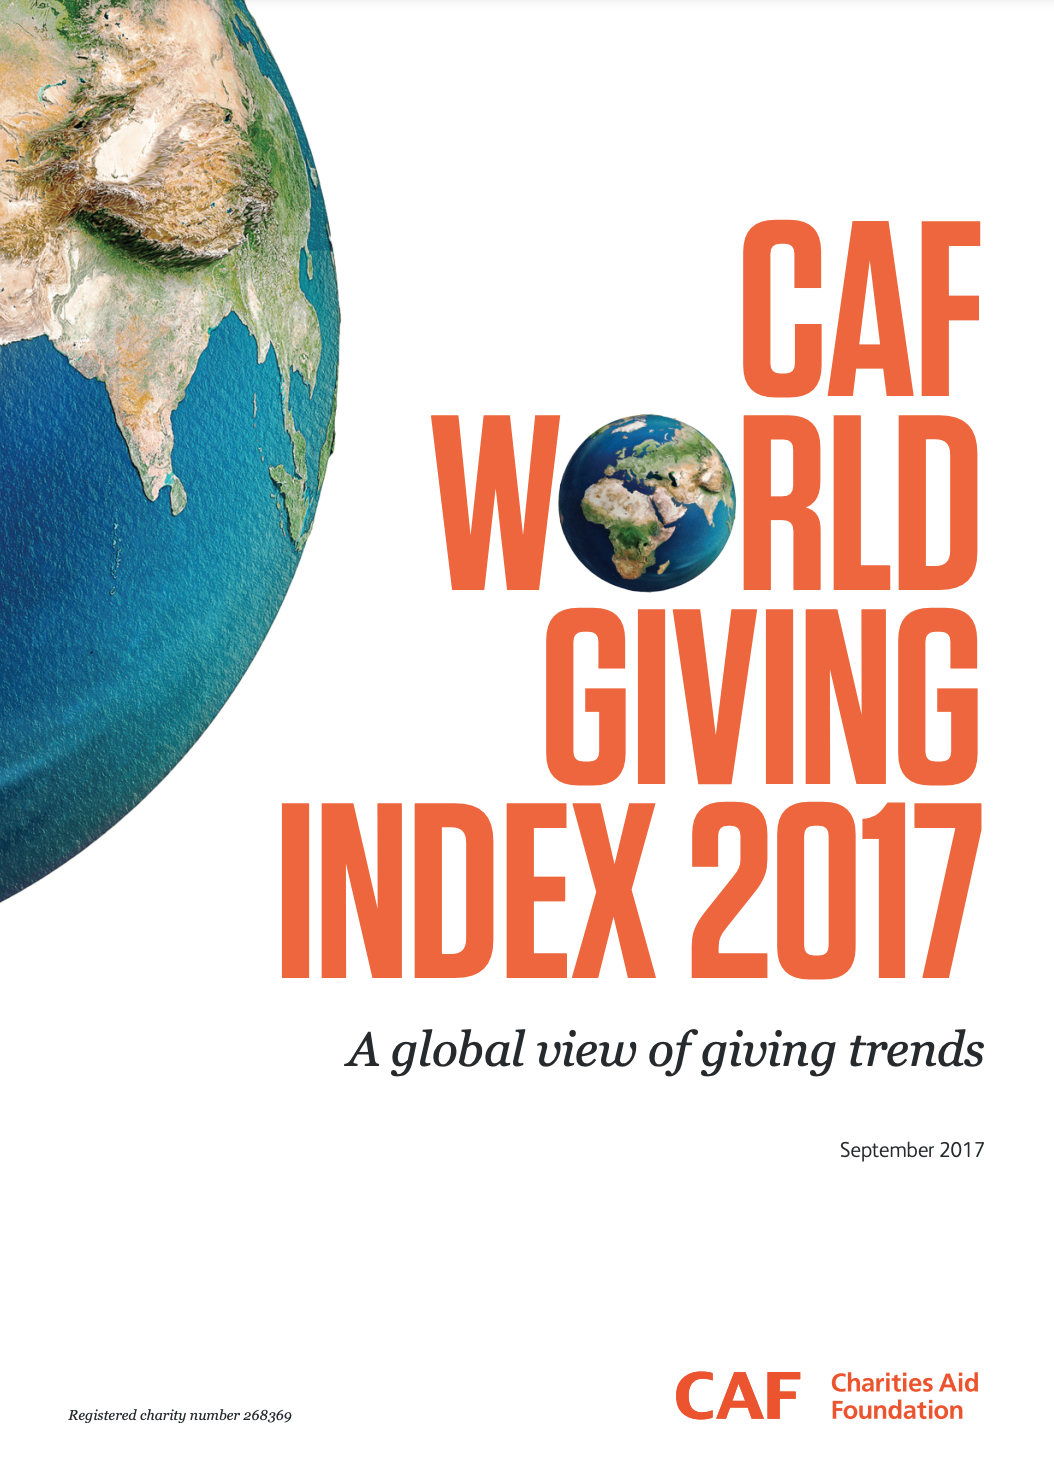 World Giving Index 2017